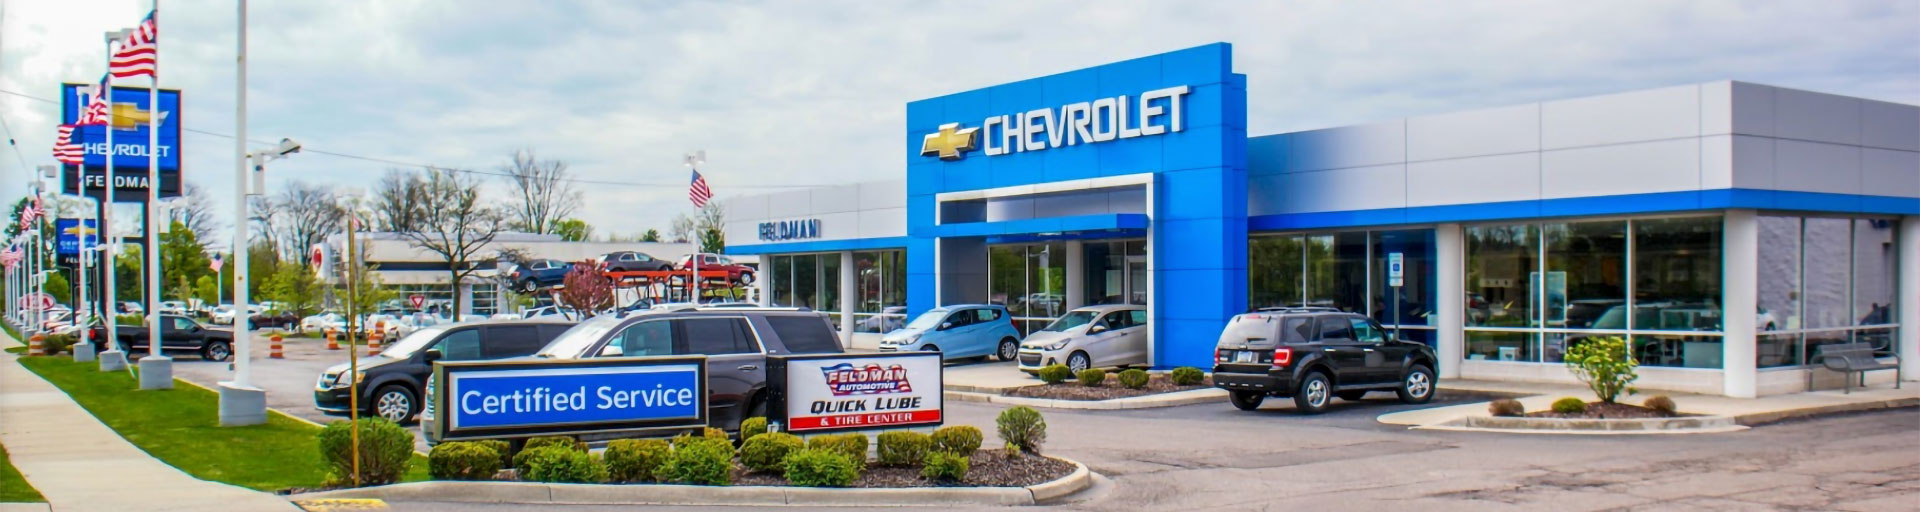 Chevrolet Service Department Feldman Chevrolet Of Novi